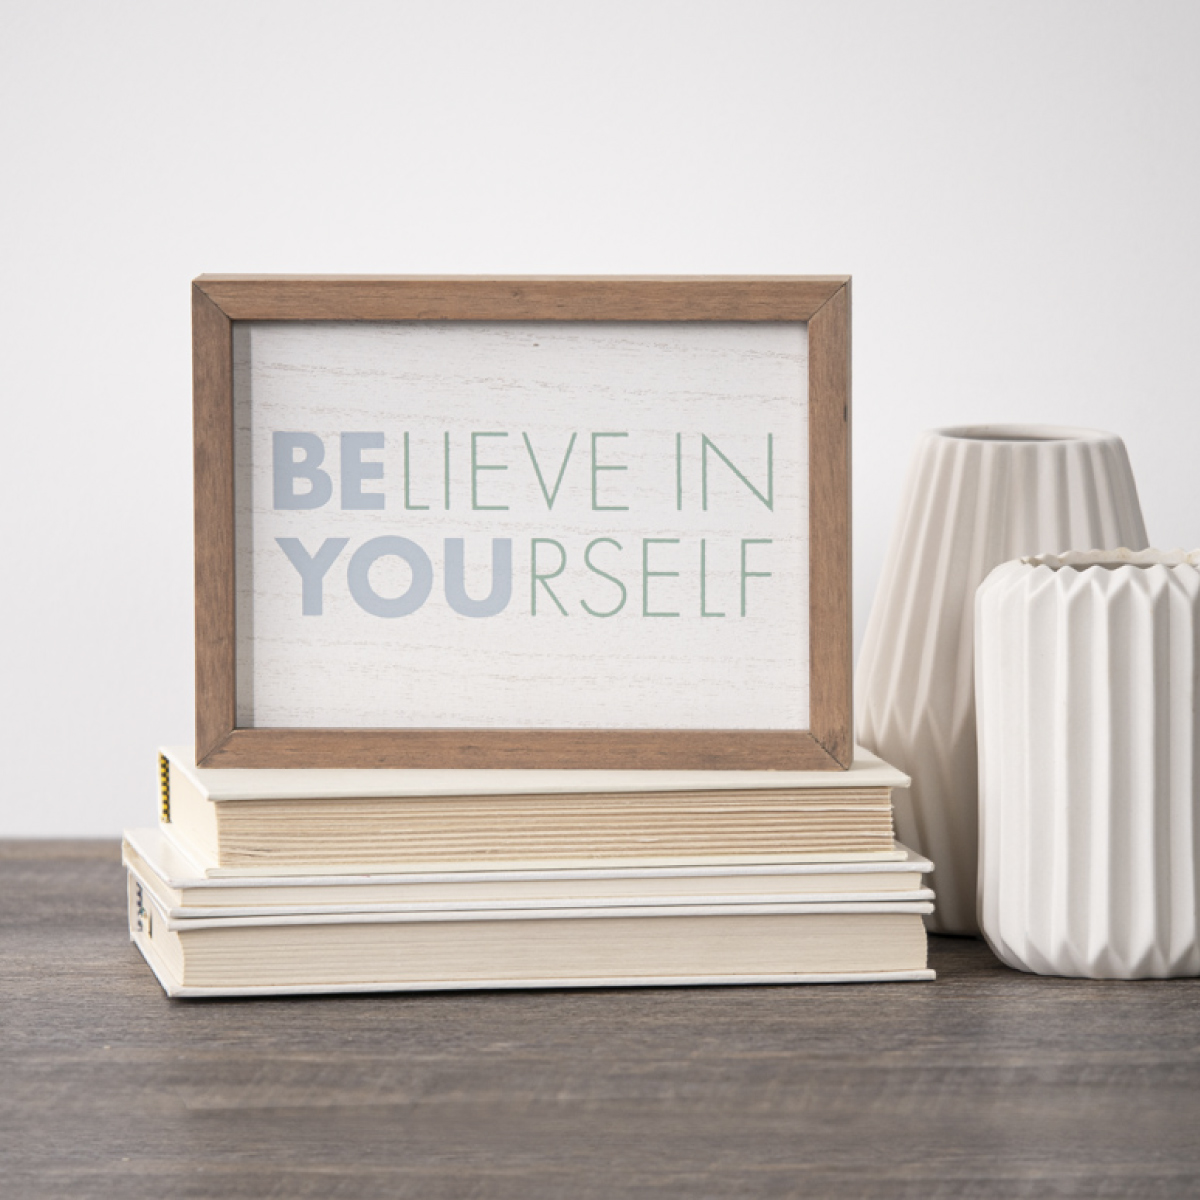 Believe in yourself finished